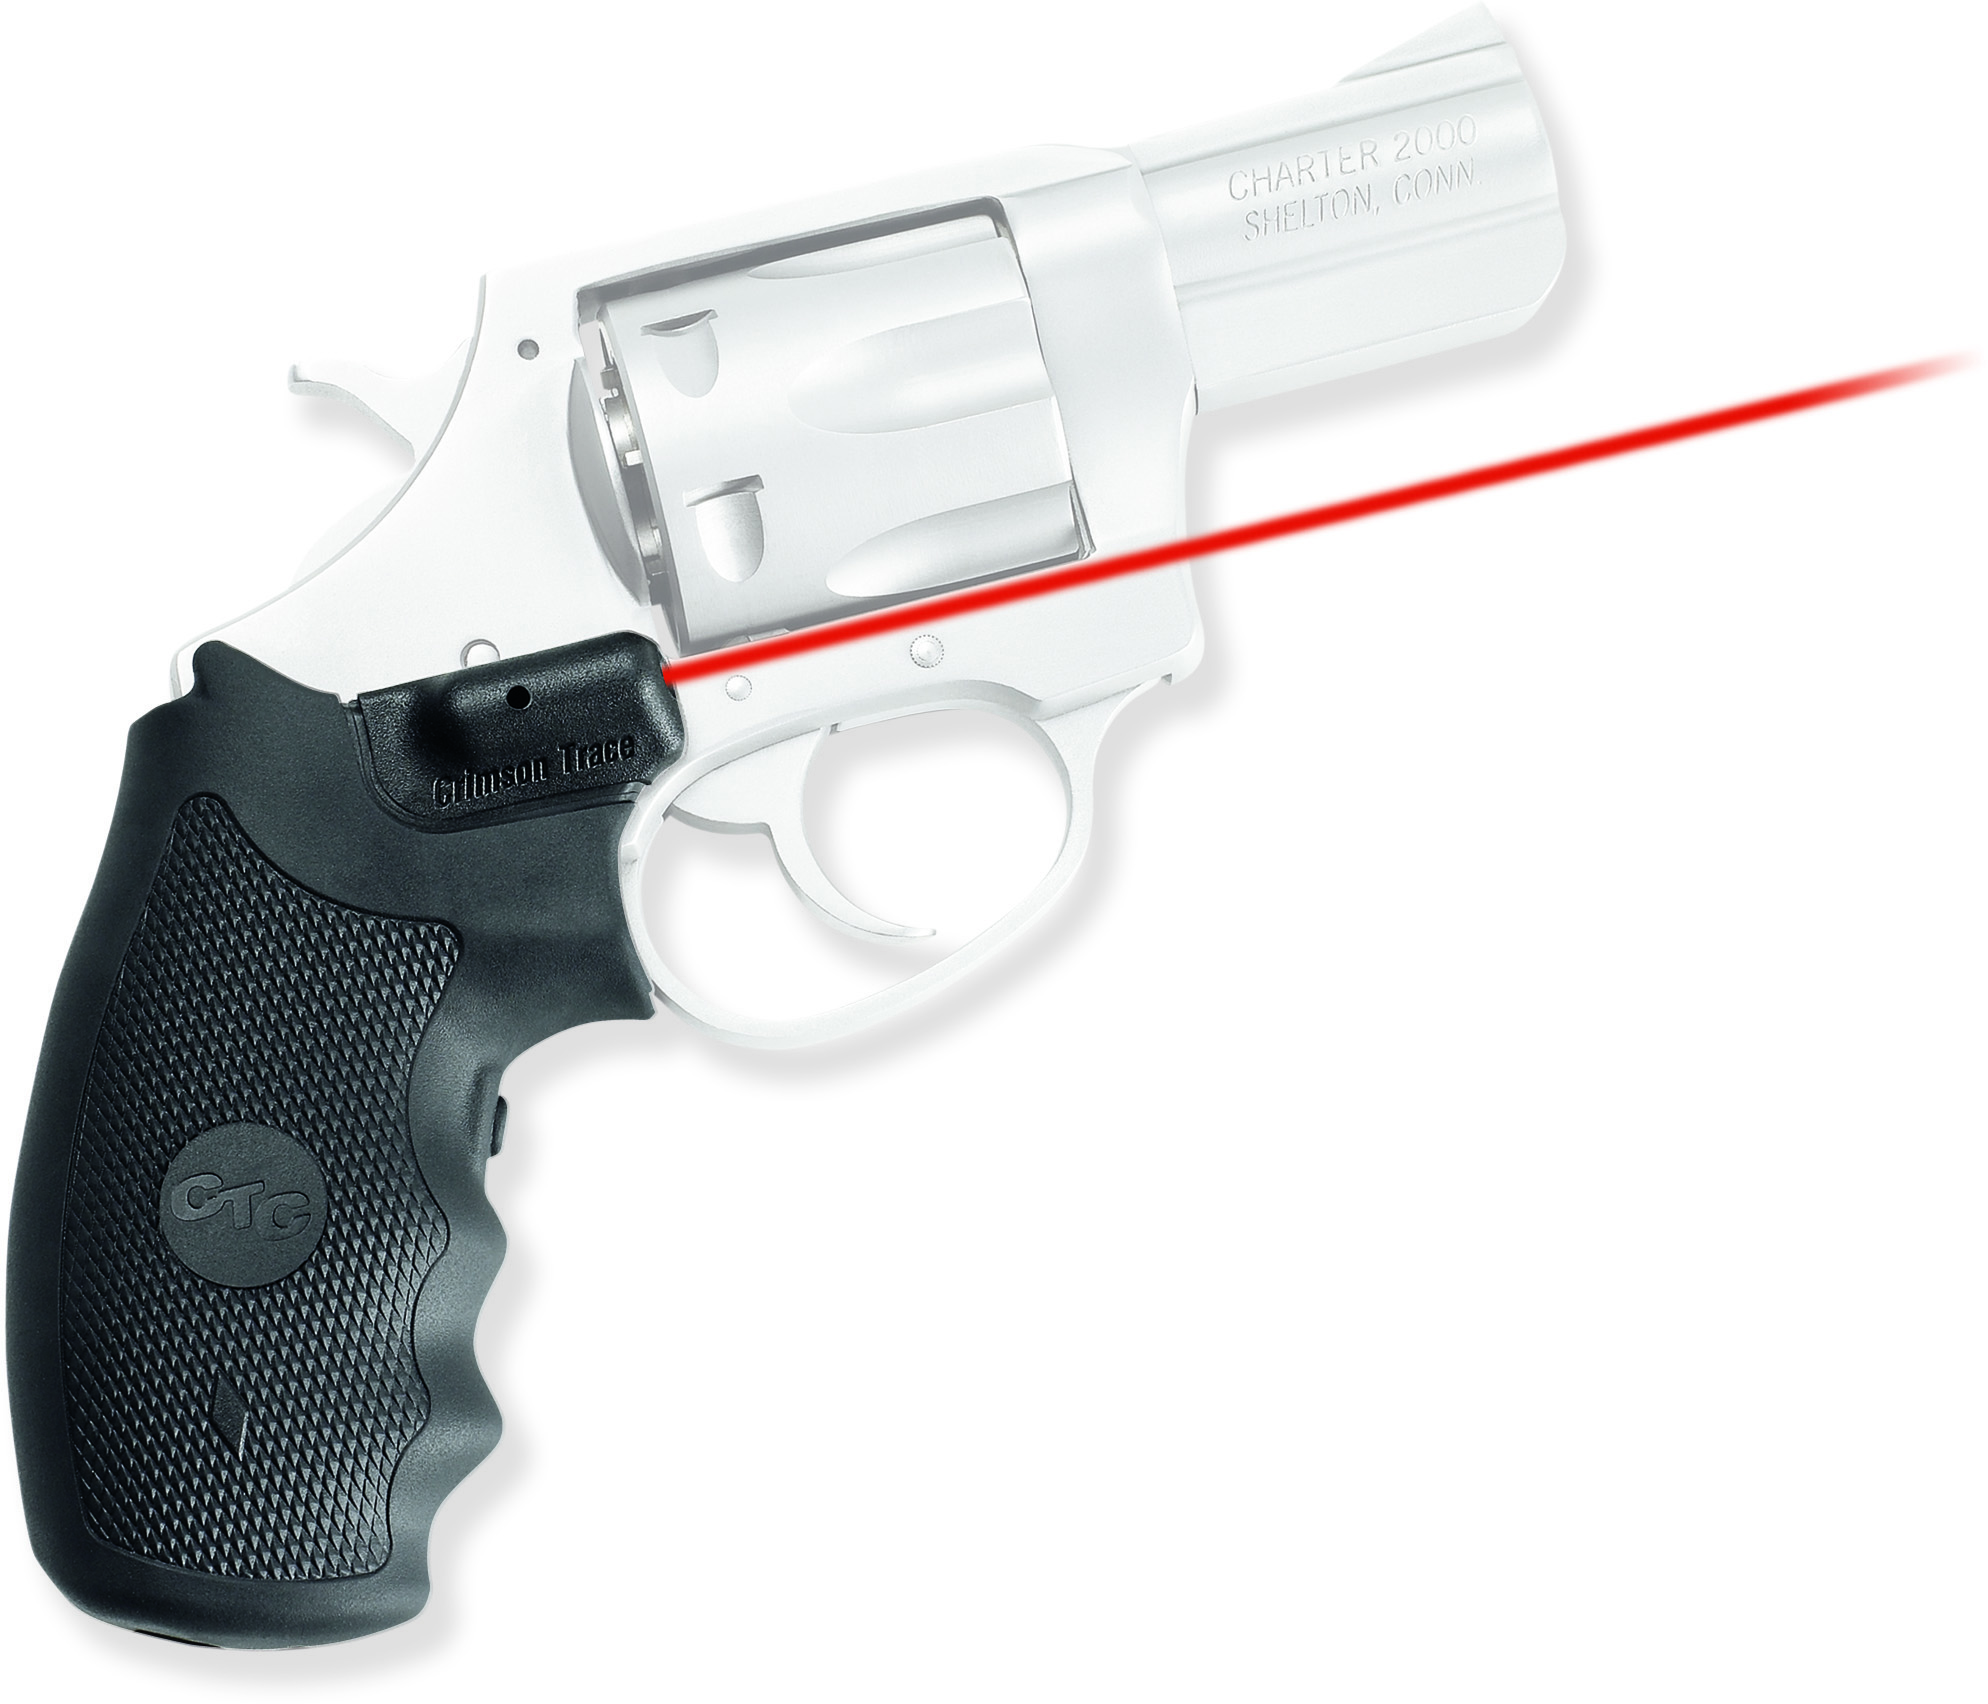 Crimson Trace Rubber Laser Grip For Charter Arms LG325